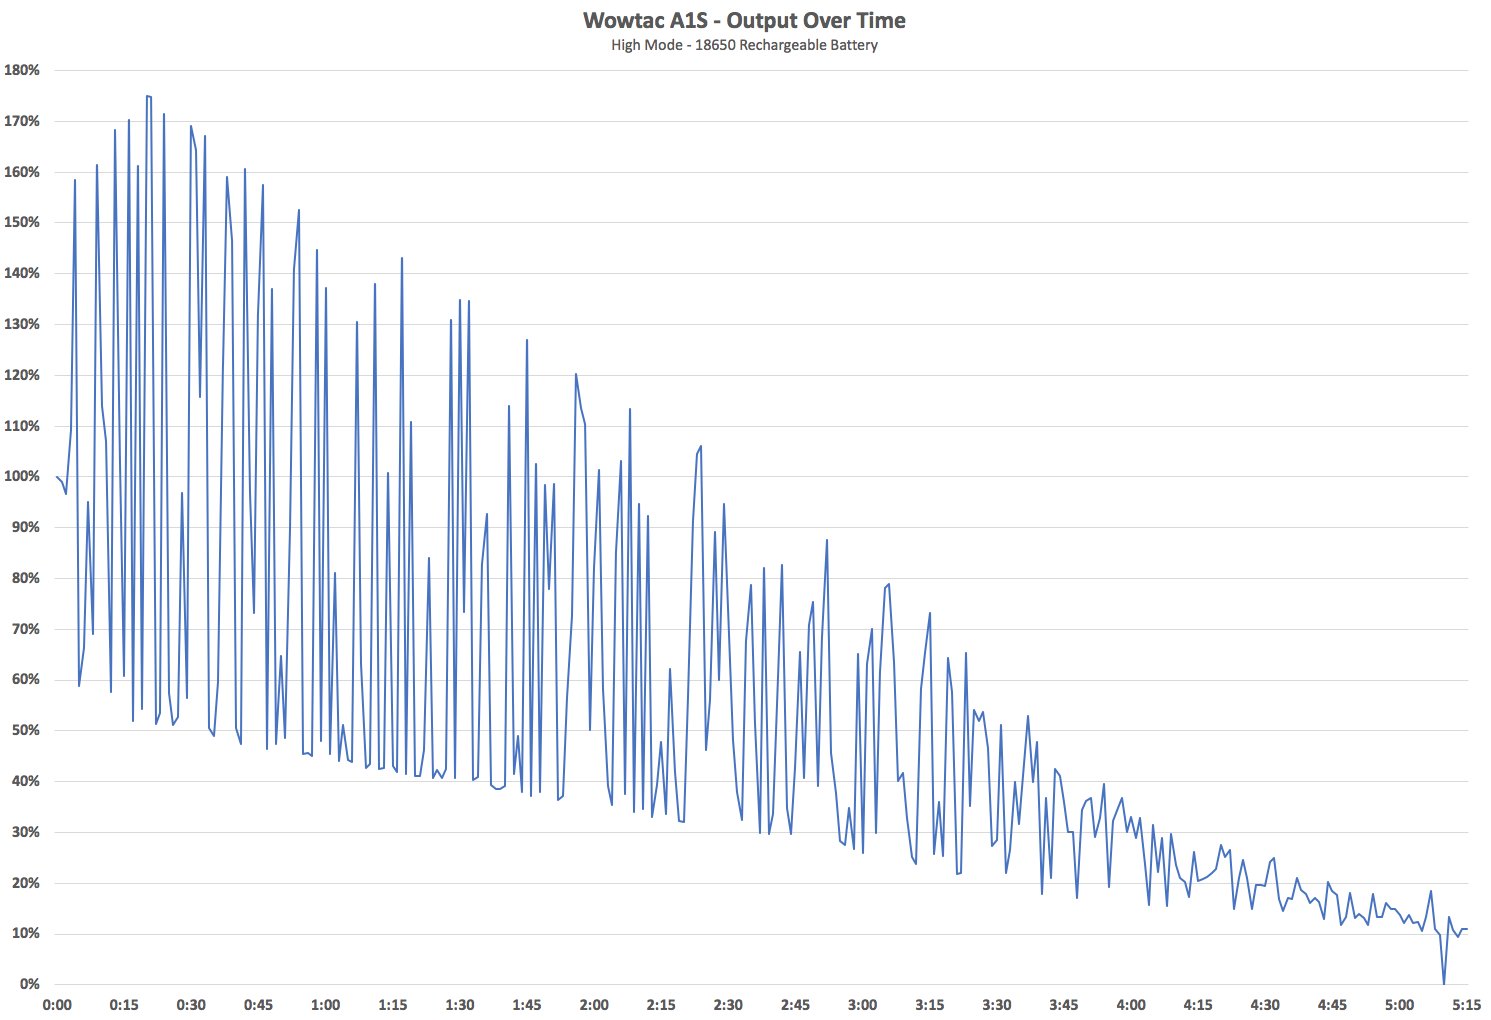 Wowtac A1S Output Over Time High Mode 18650 Battery